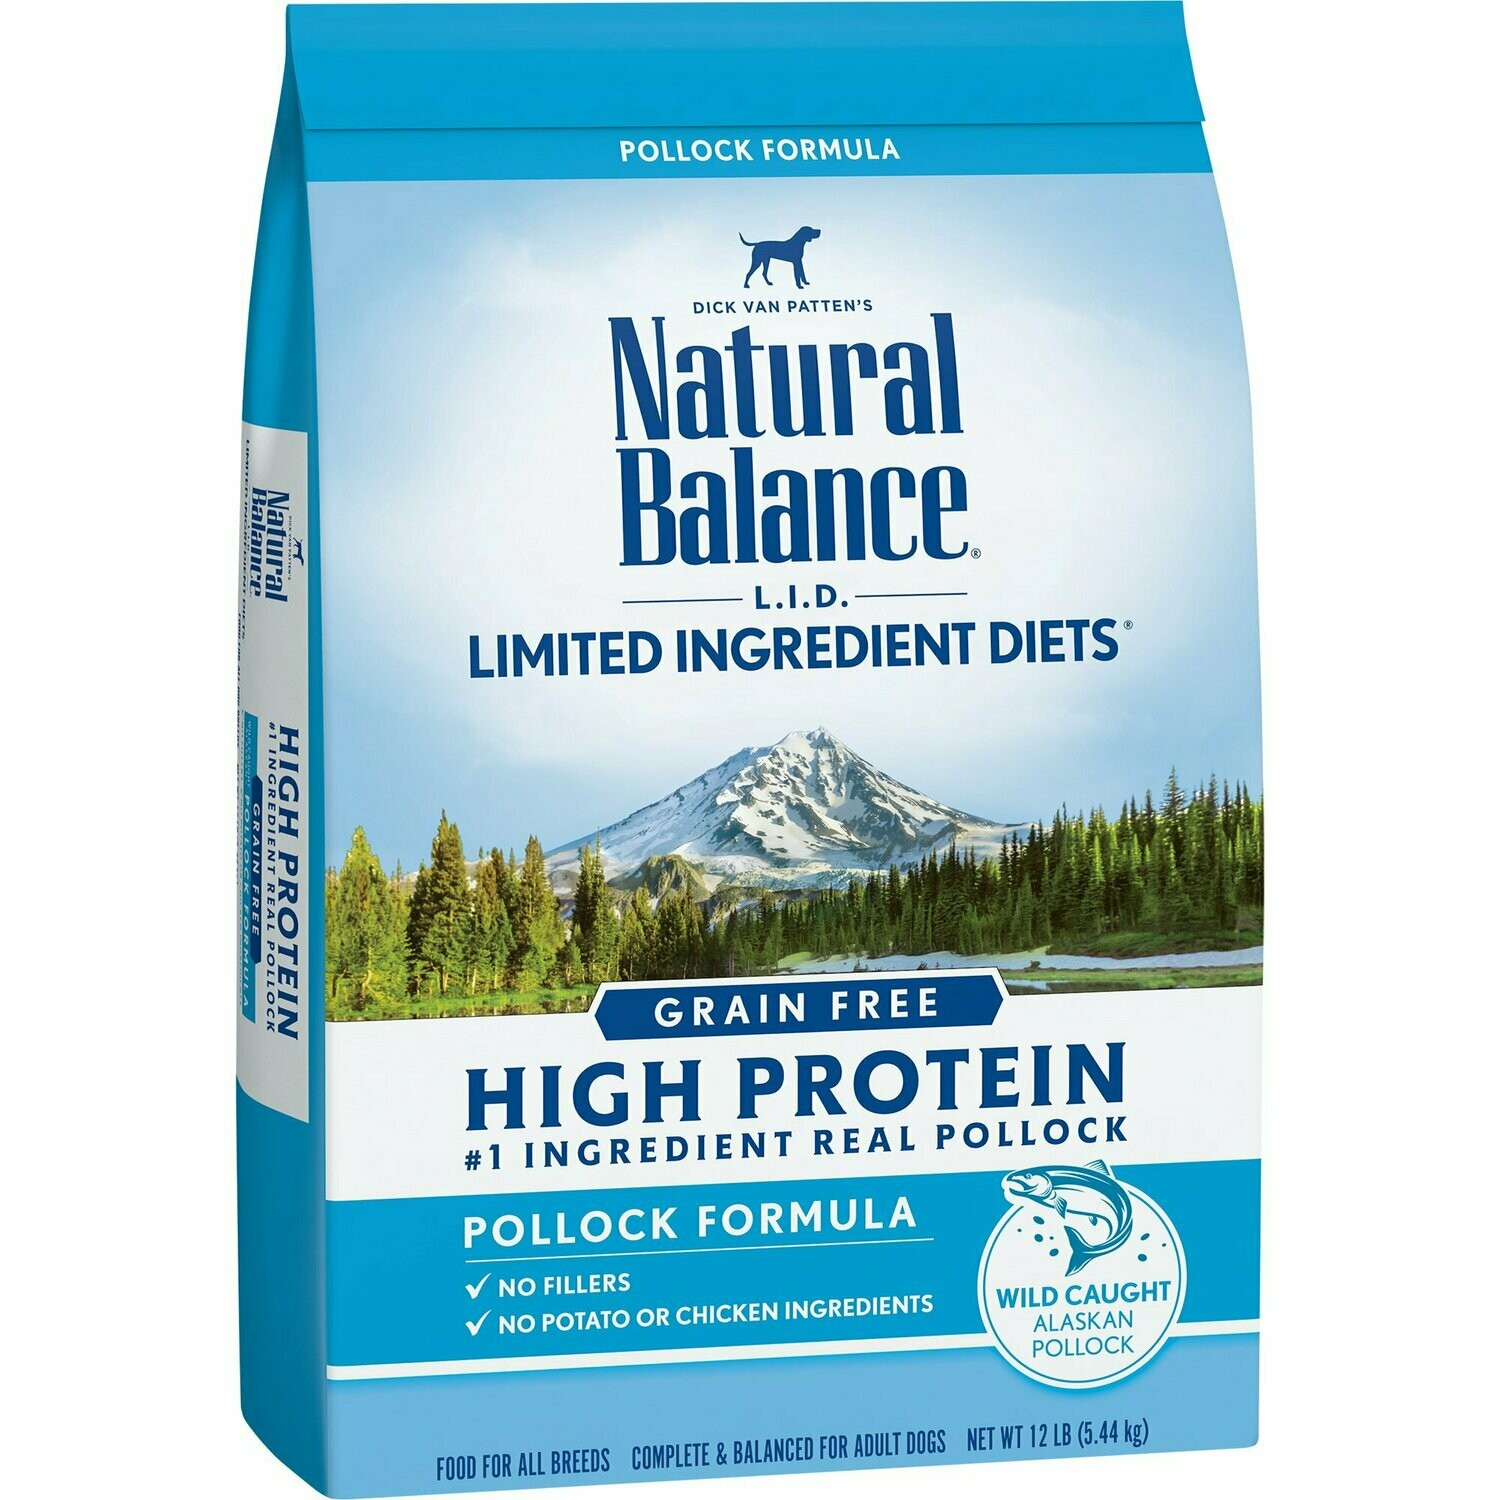 Natural Balance Limited Ingredient Diets High Protein Grain Free Pollock Formula Dry Dog Food 12 lbs (9/19) (A.K2)